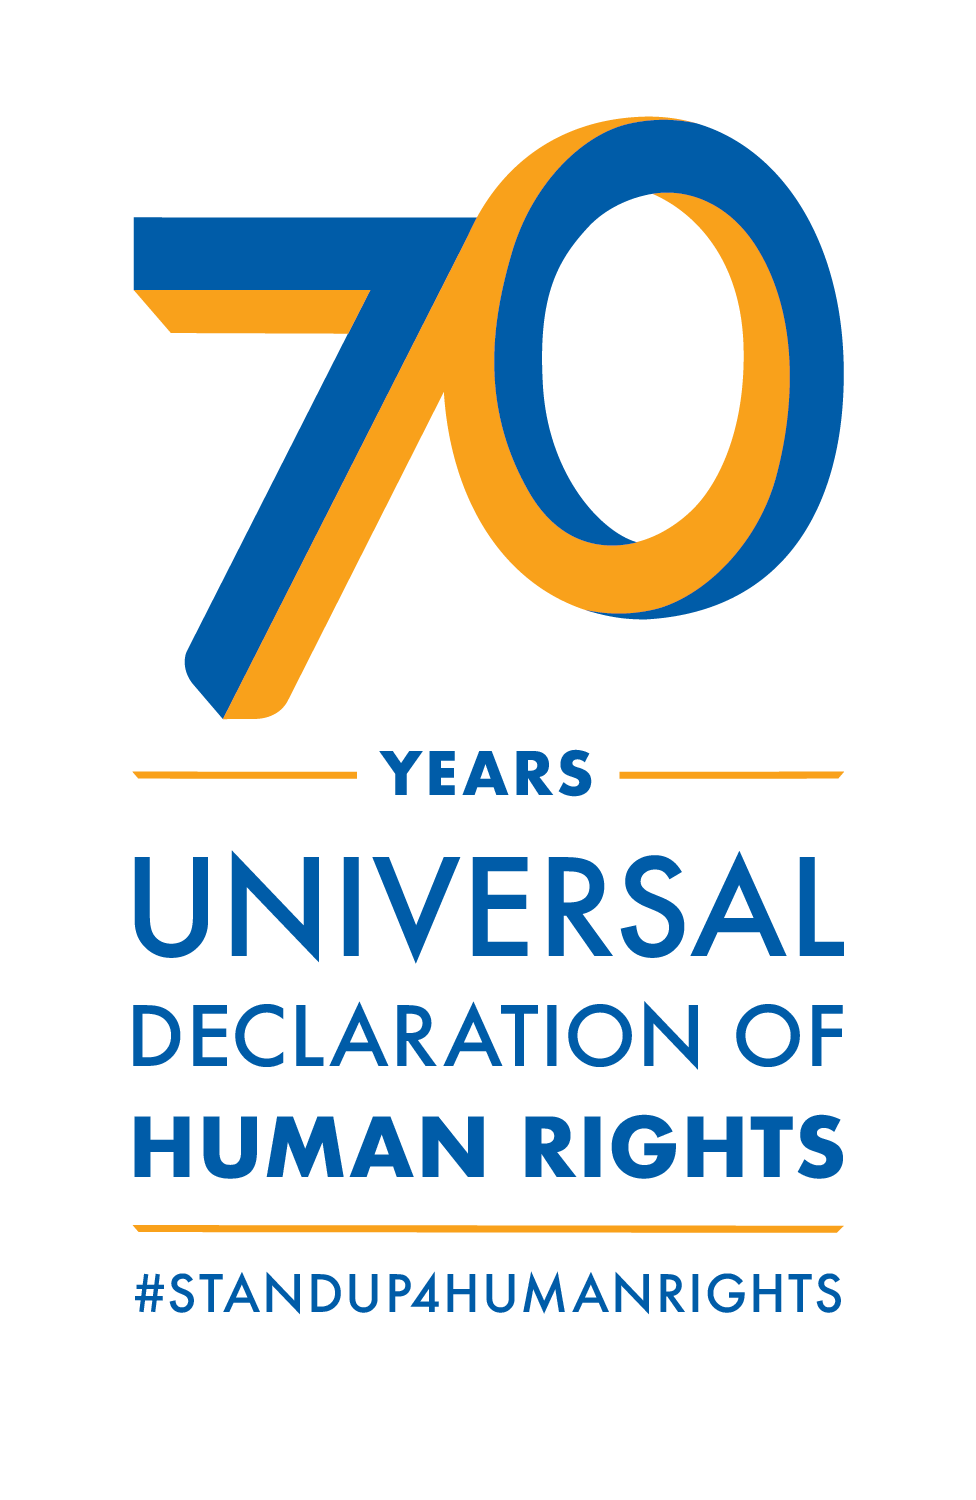 """[Logo for the 70th anniversary of the Universal Declaration of Human Rights. It is a stylized blue and orange """"70"""" over the words """"years"""", which is over the words """"Universal Declaration of Human Rights"""", which is over """"#standup4humanrights"""".]"""